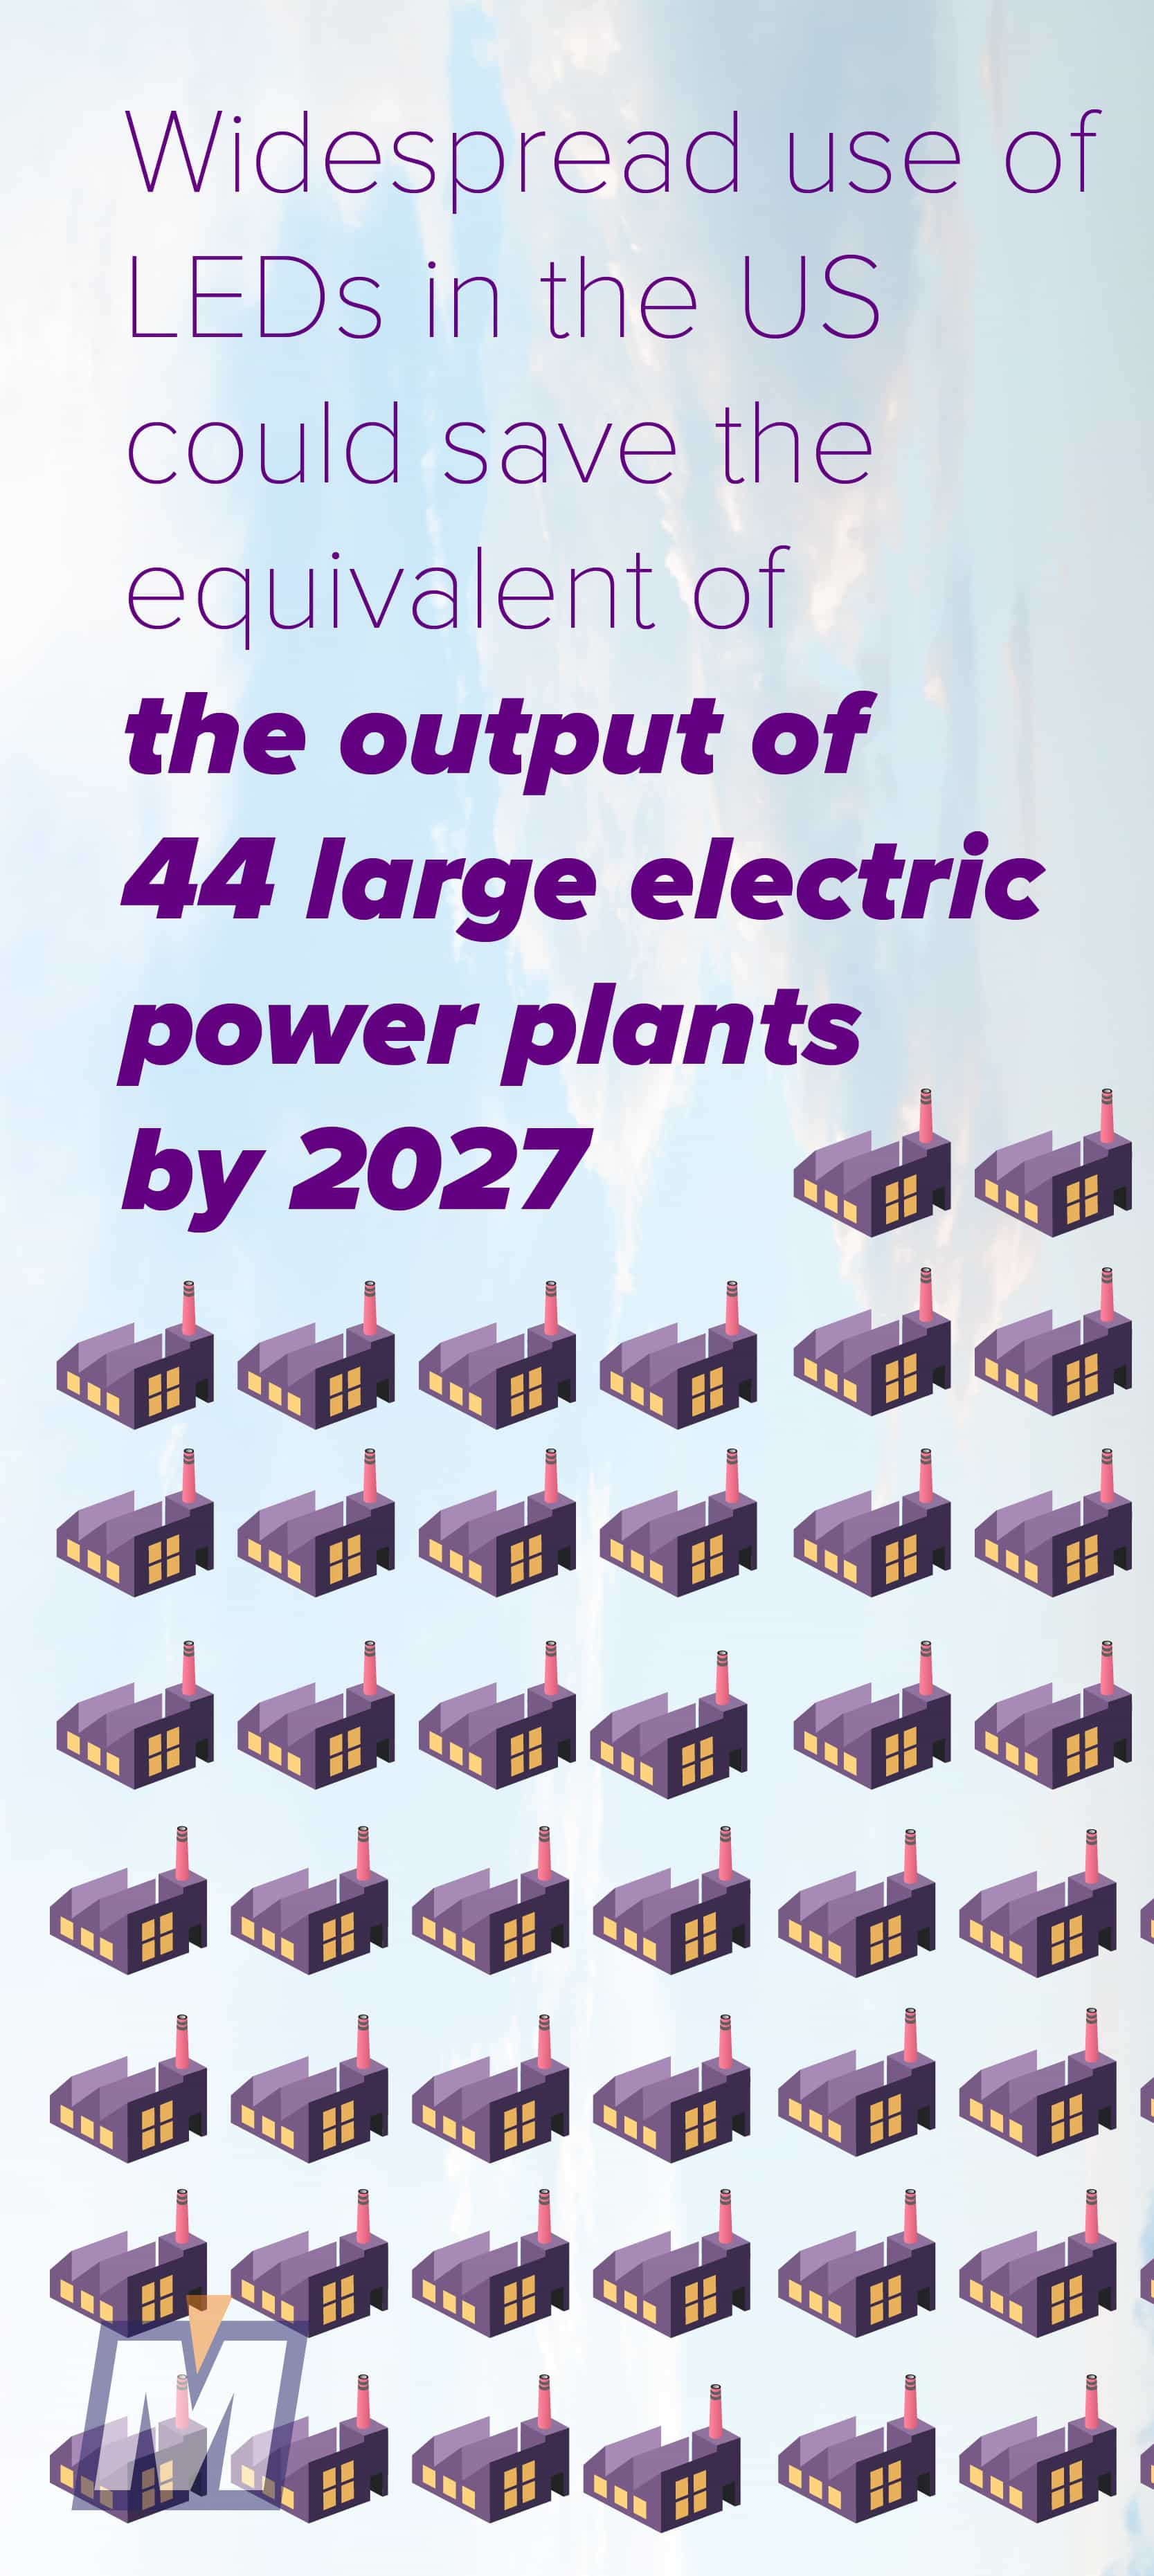 Widespread use of LEDs could save the energy equivalent of 44 large electric power plants by 2027